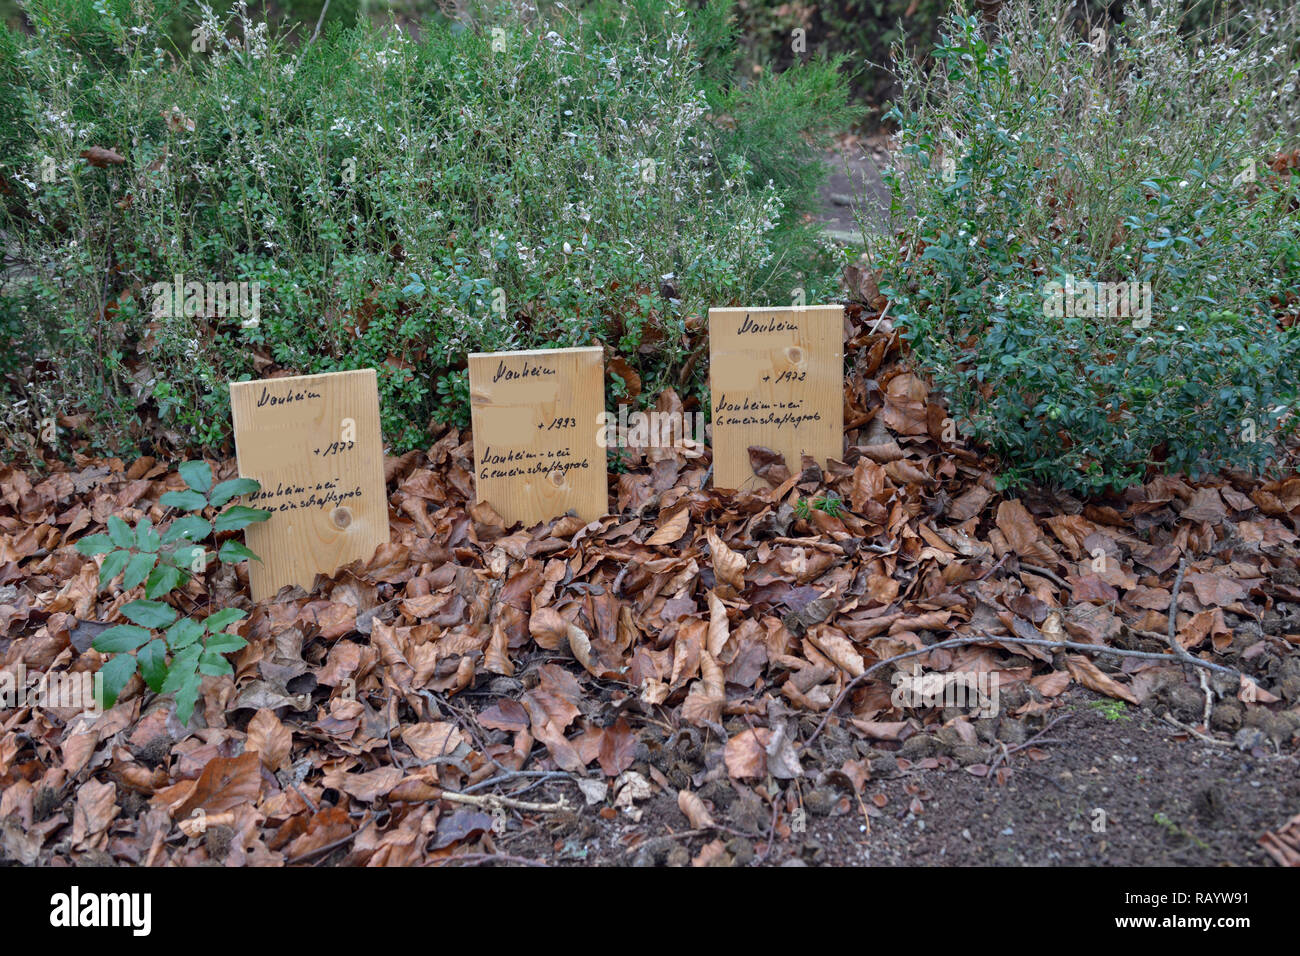 Kerpen-Manheim, Dezember 2018: In memory to the reburied graves of the old cemetery of Manheim to give place for the extension of the lignite surface  - Stock Image